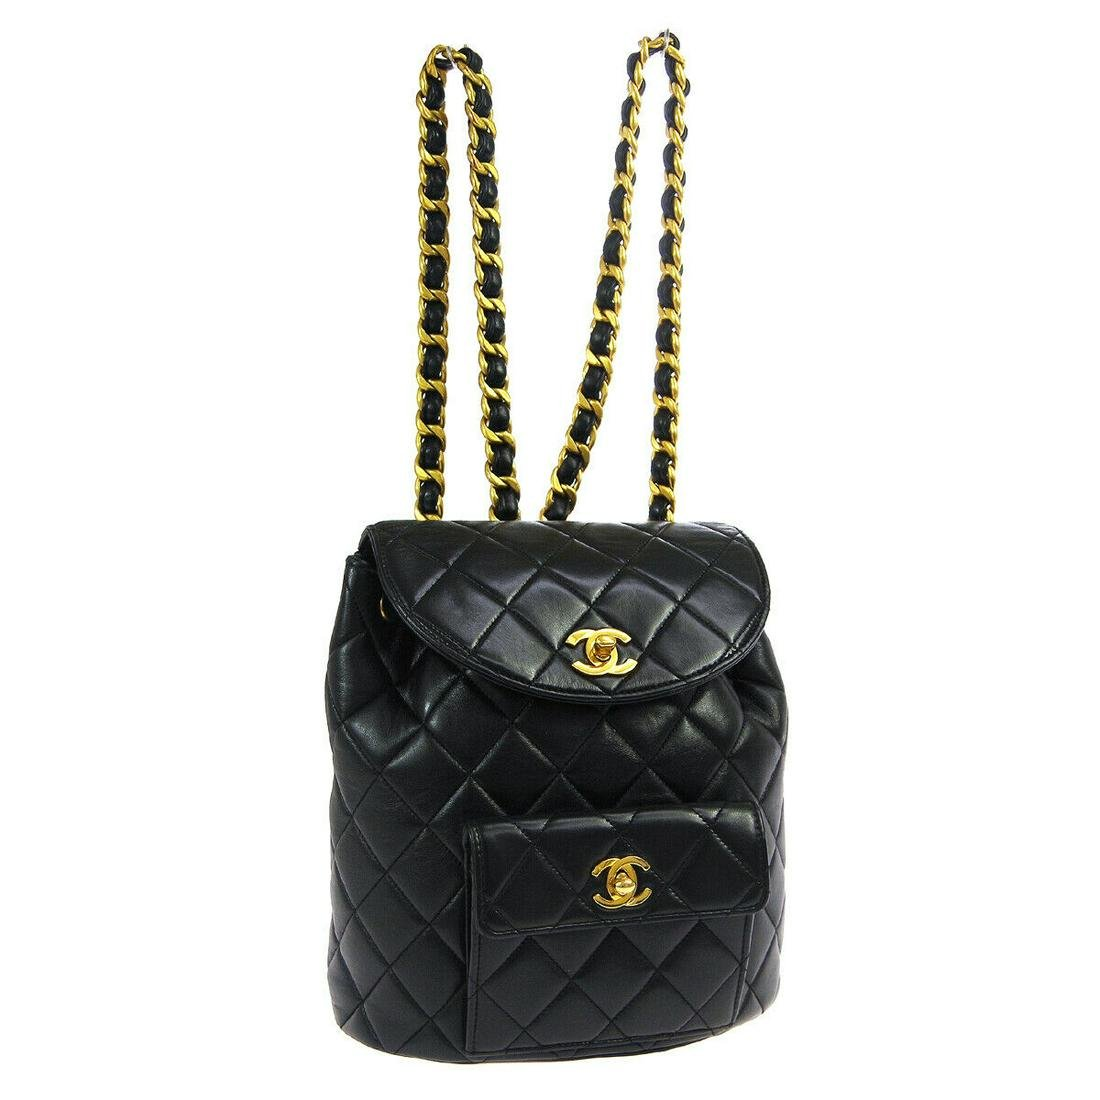 Authentic CHANEL BACKPACK Leather Backpack